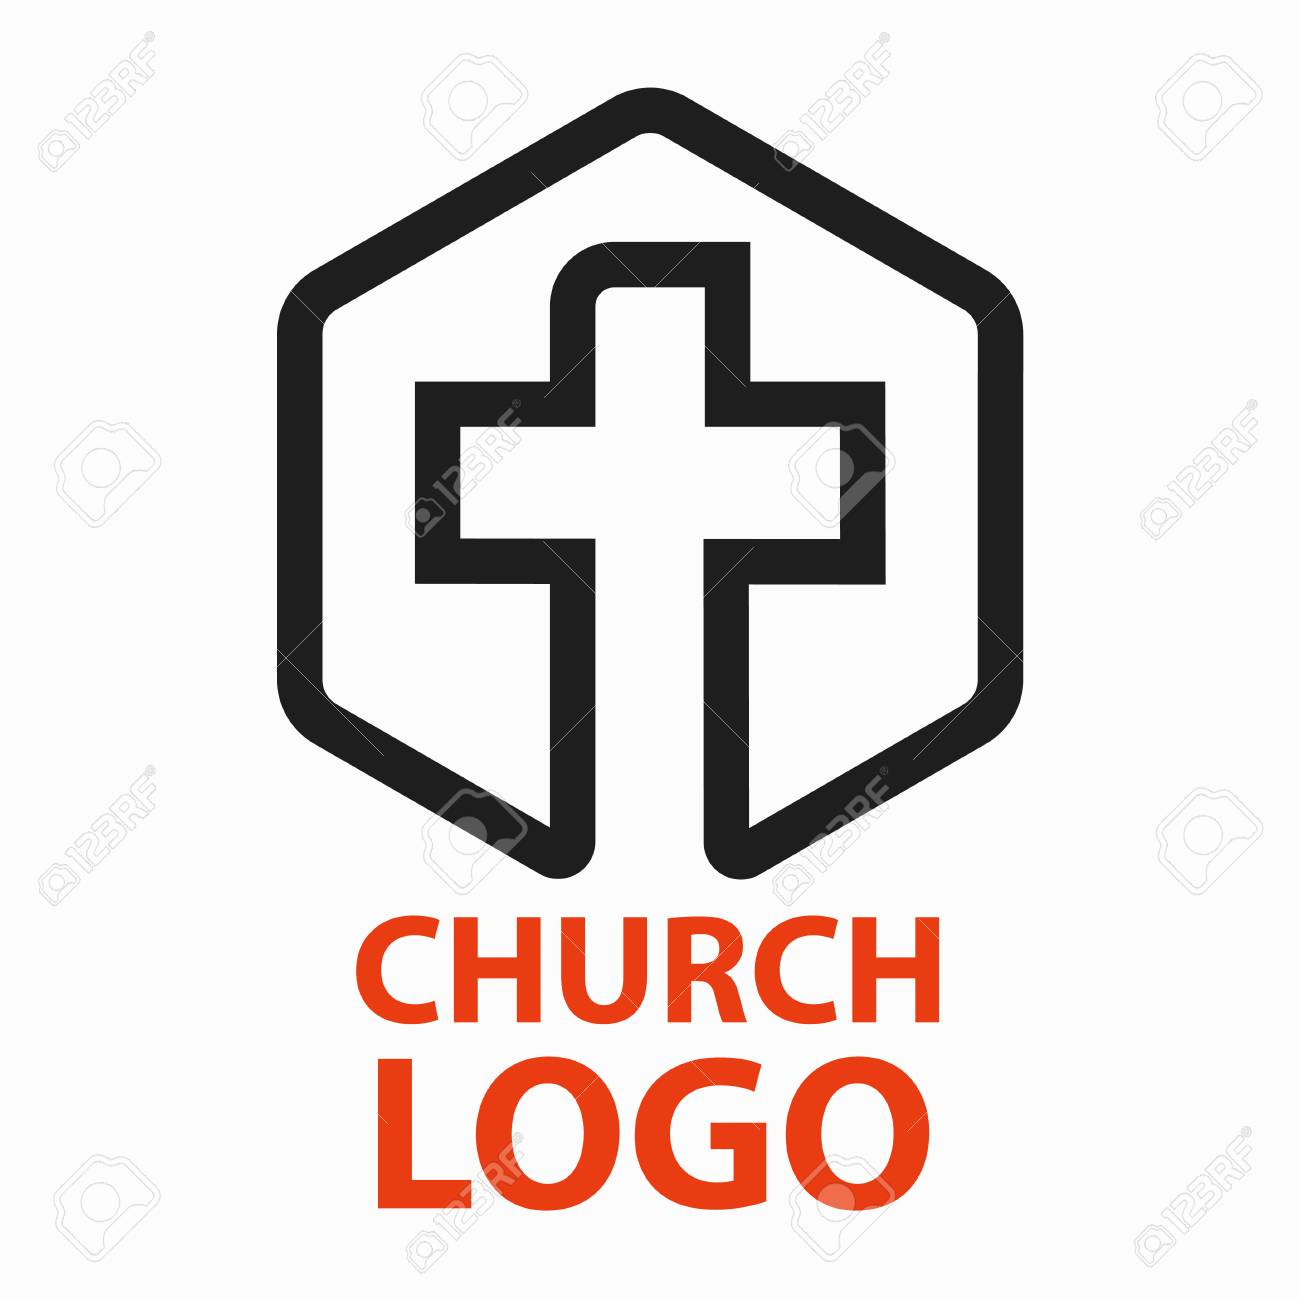 Christian Churches Logo Line Art In The Form Of A Cross Intended